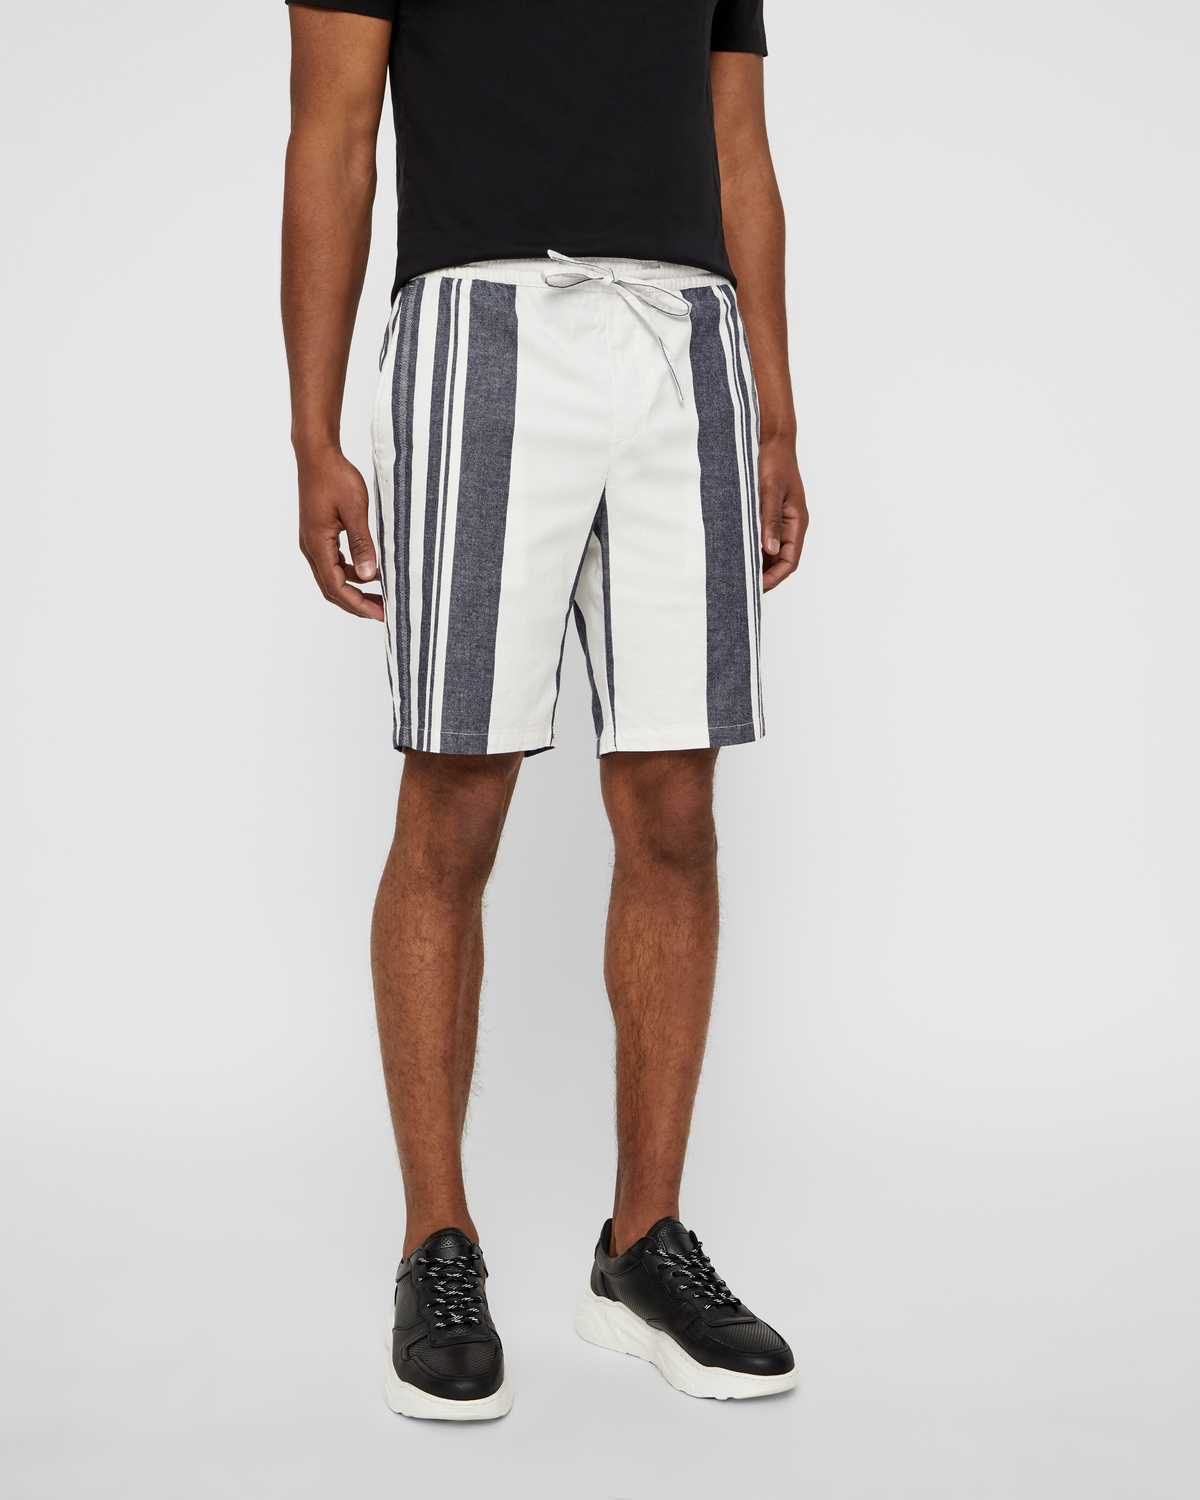 Selected Tapered Stefan shorts